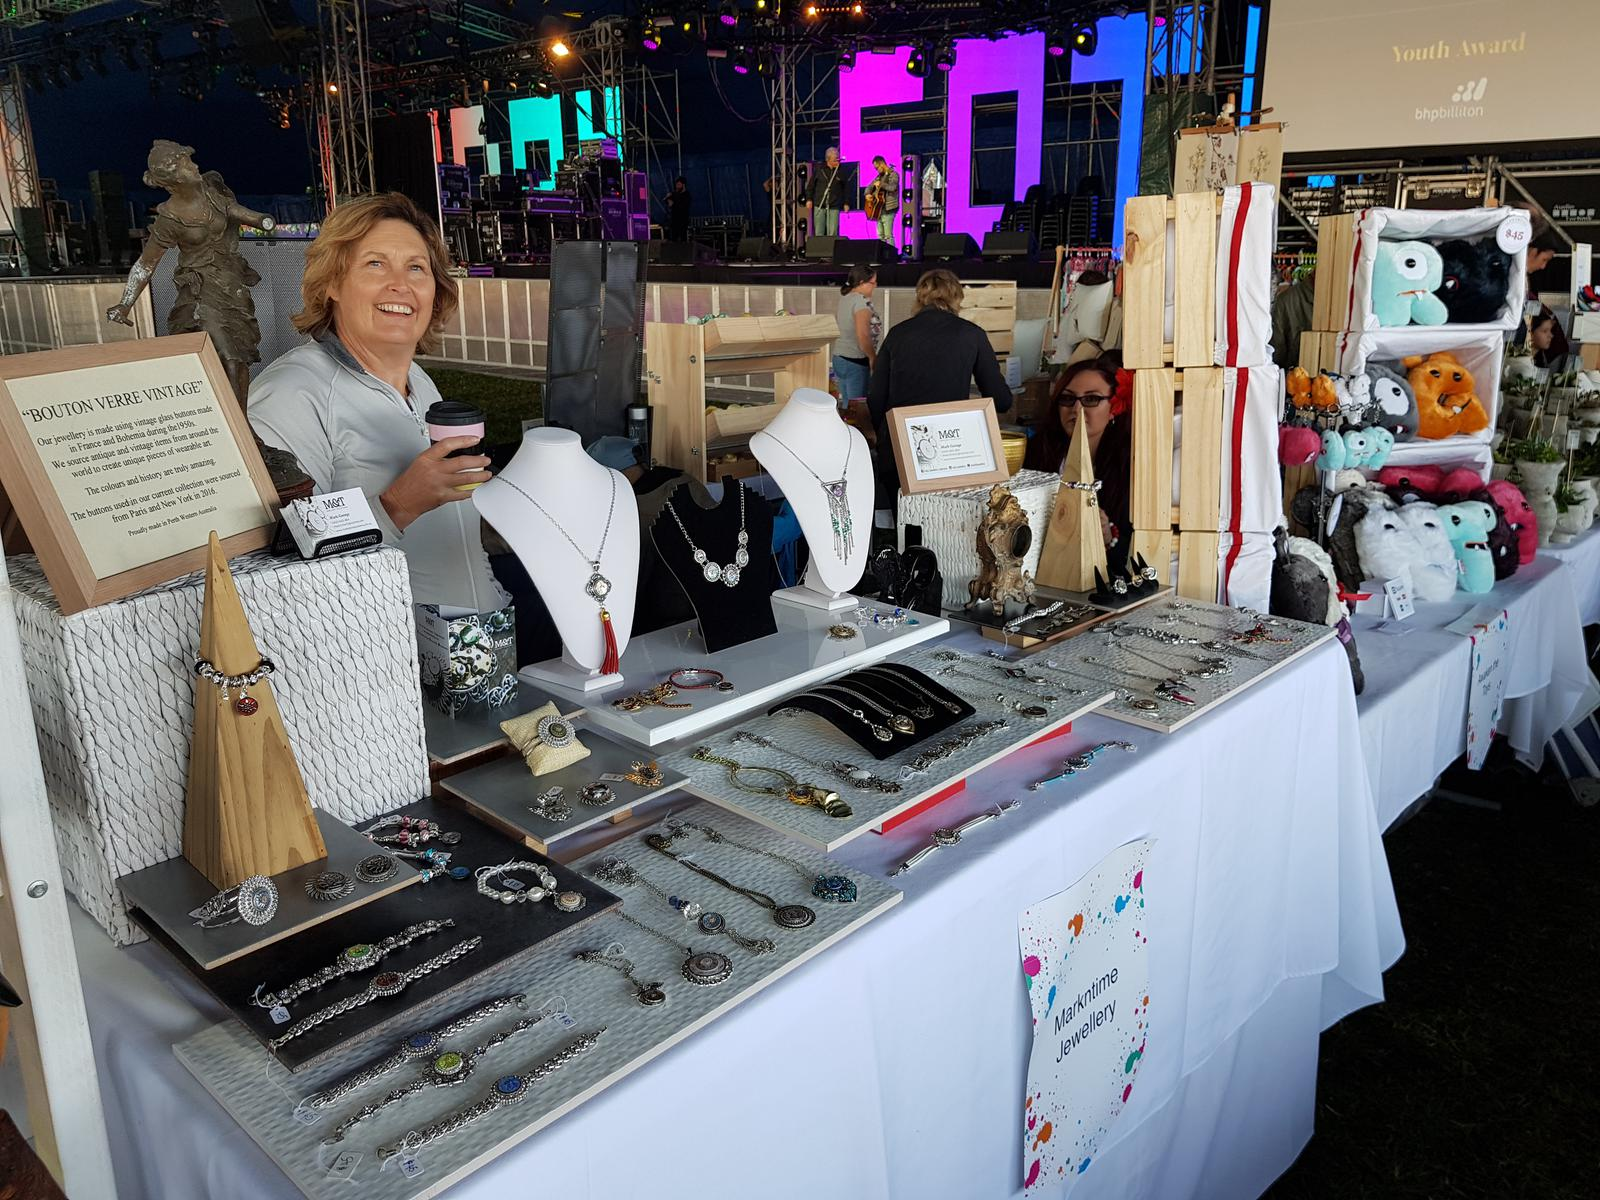 Our stall layout at Elizabeth quay 2017